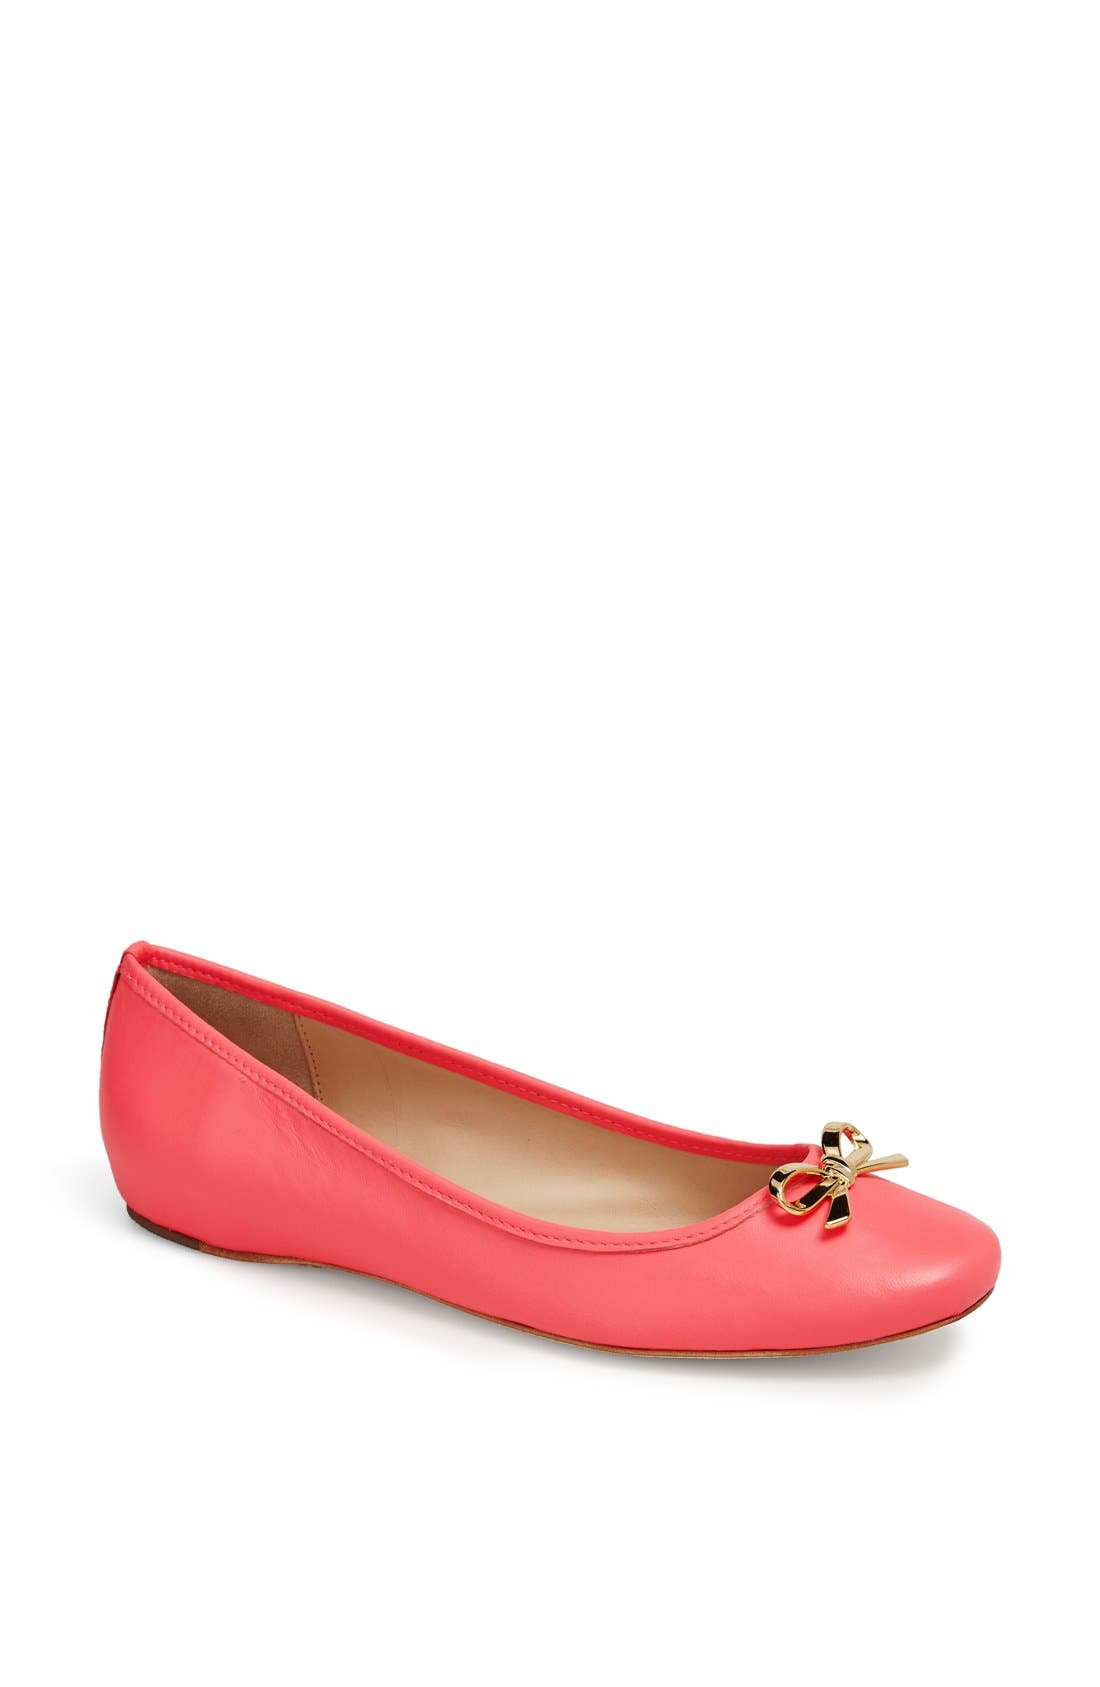 Alternate Image 1 Selected - kate spade new york 'villa' flat